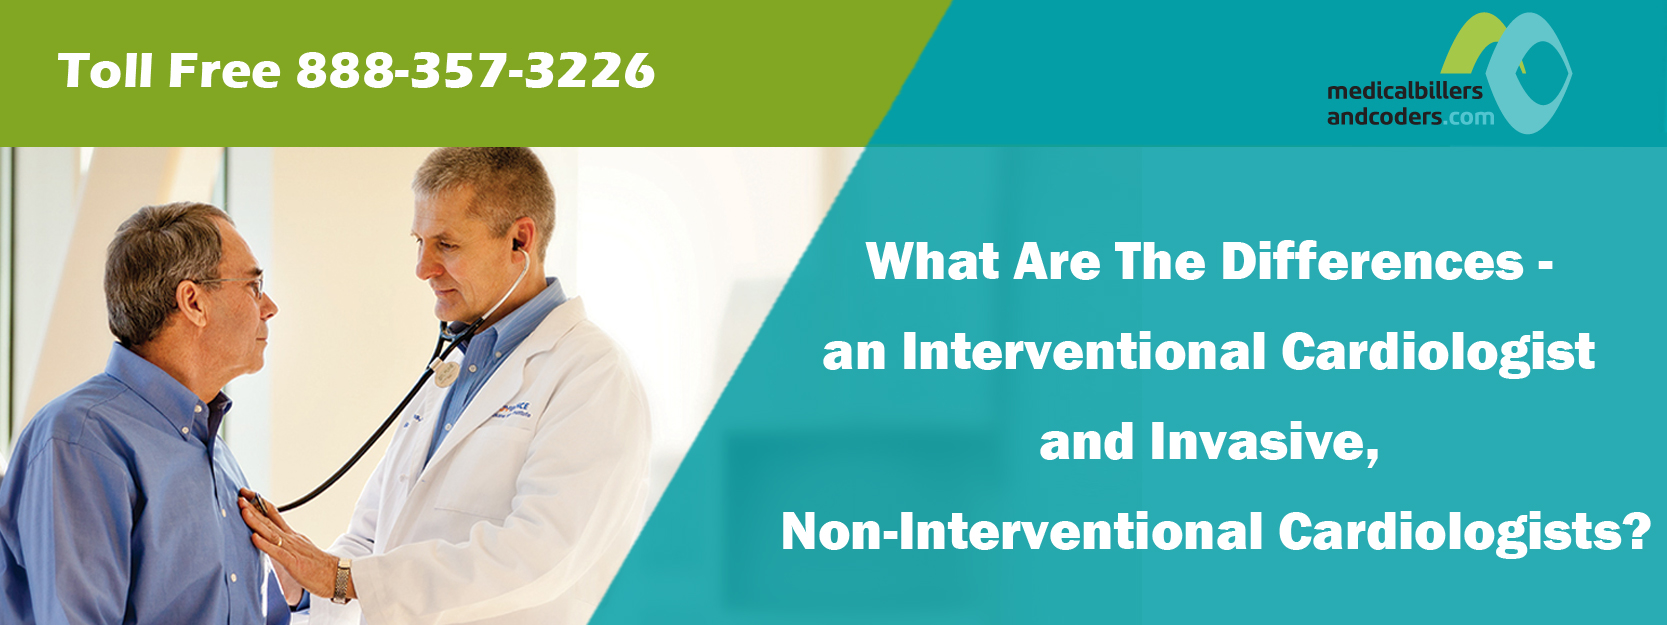 What-Are-The-Differences---an-Interventional-Cardiologist-and-Invasive,-Non-Interventional-Cardiologists